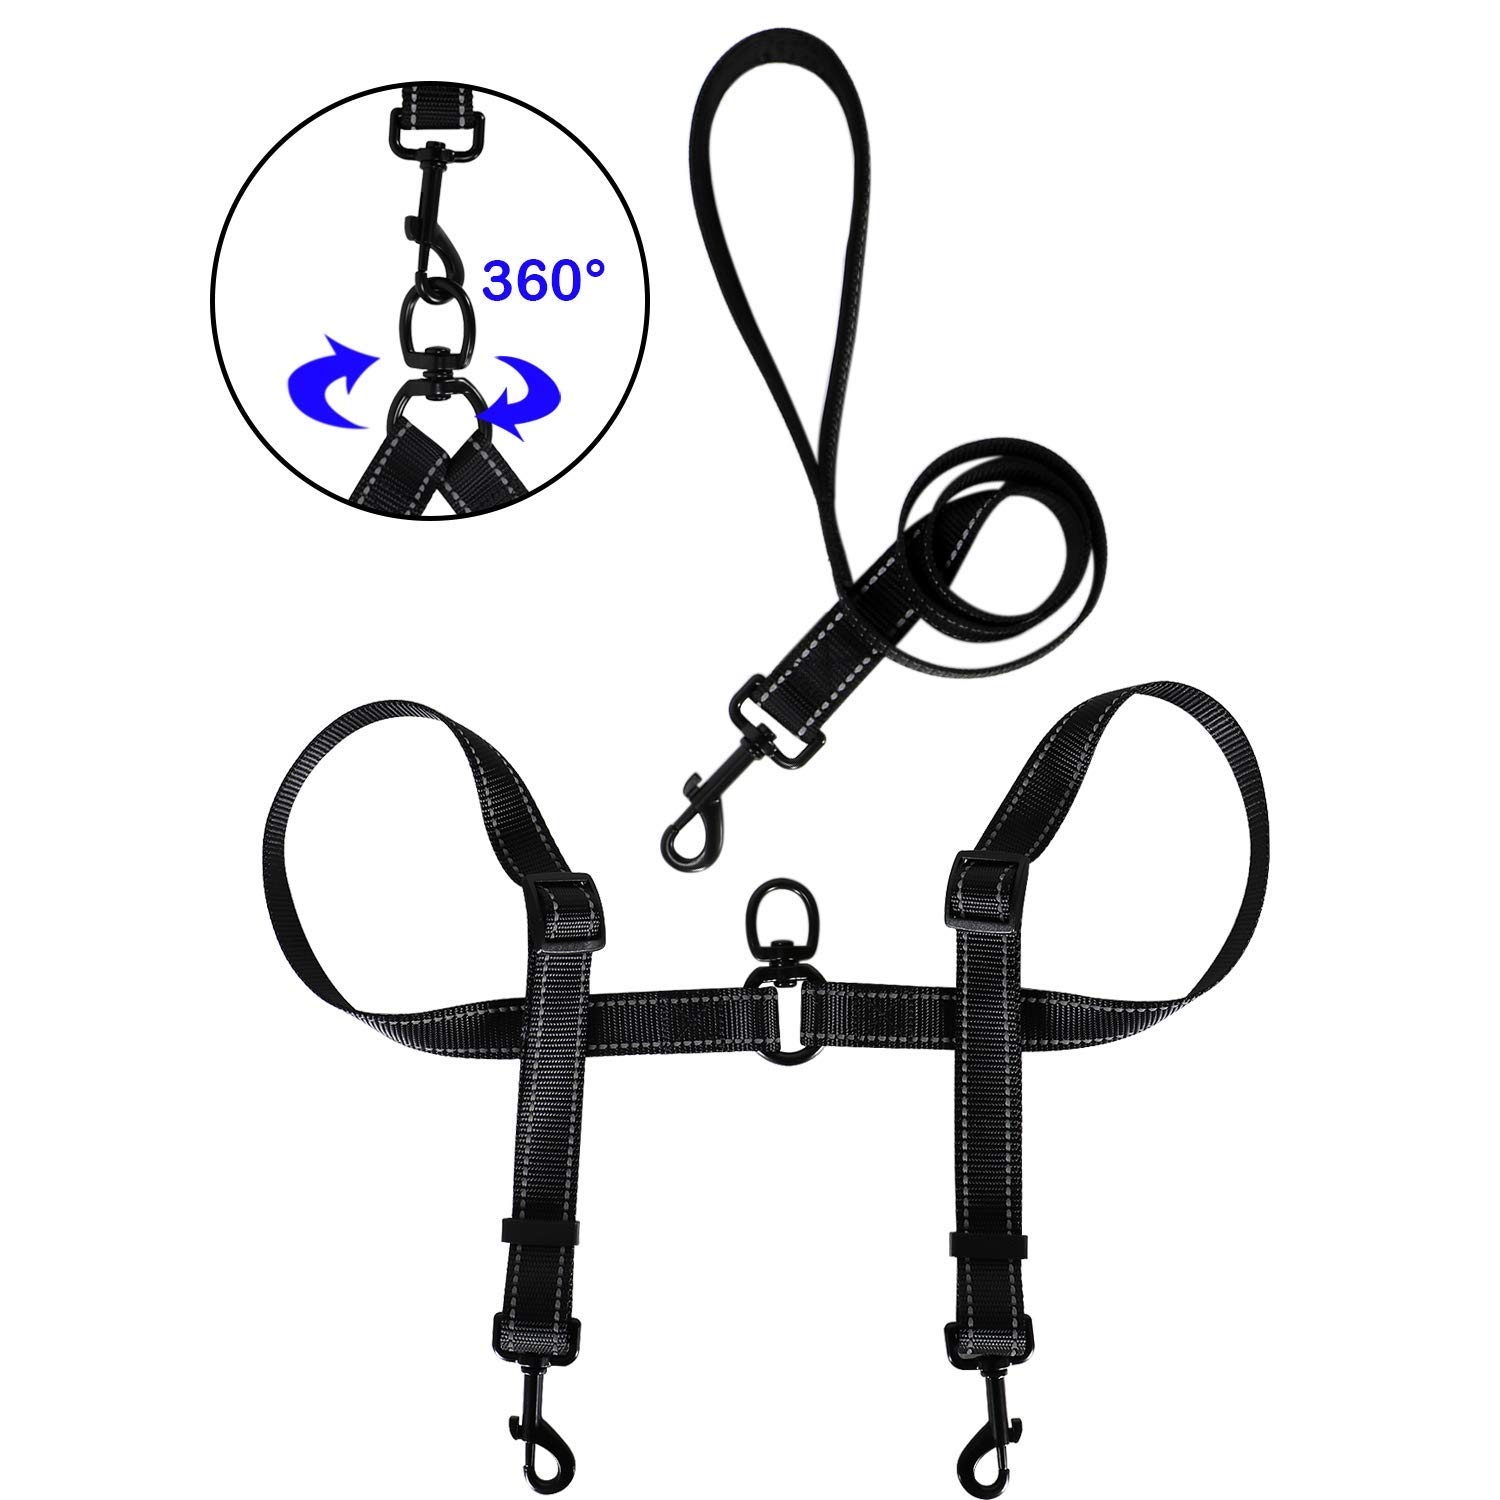 With handle,for 2 small (0-50lbs) dogs Tacobear Double Dog Leash for Two Dogs No Tangle Coupler Double Dog Dual Adjustable Splitter Lead Trainer Leash for Small Medium Large Dogs (with Handle,for 2 Small (0-50lbs) Dogs)